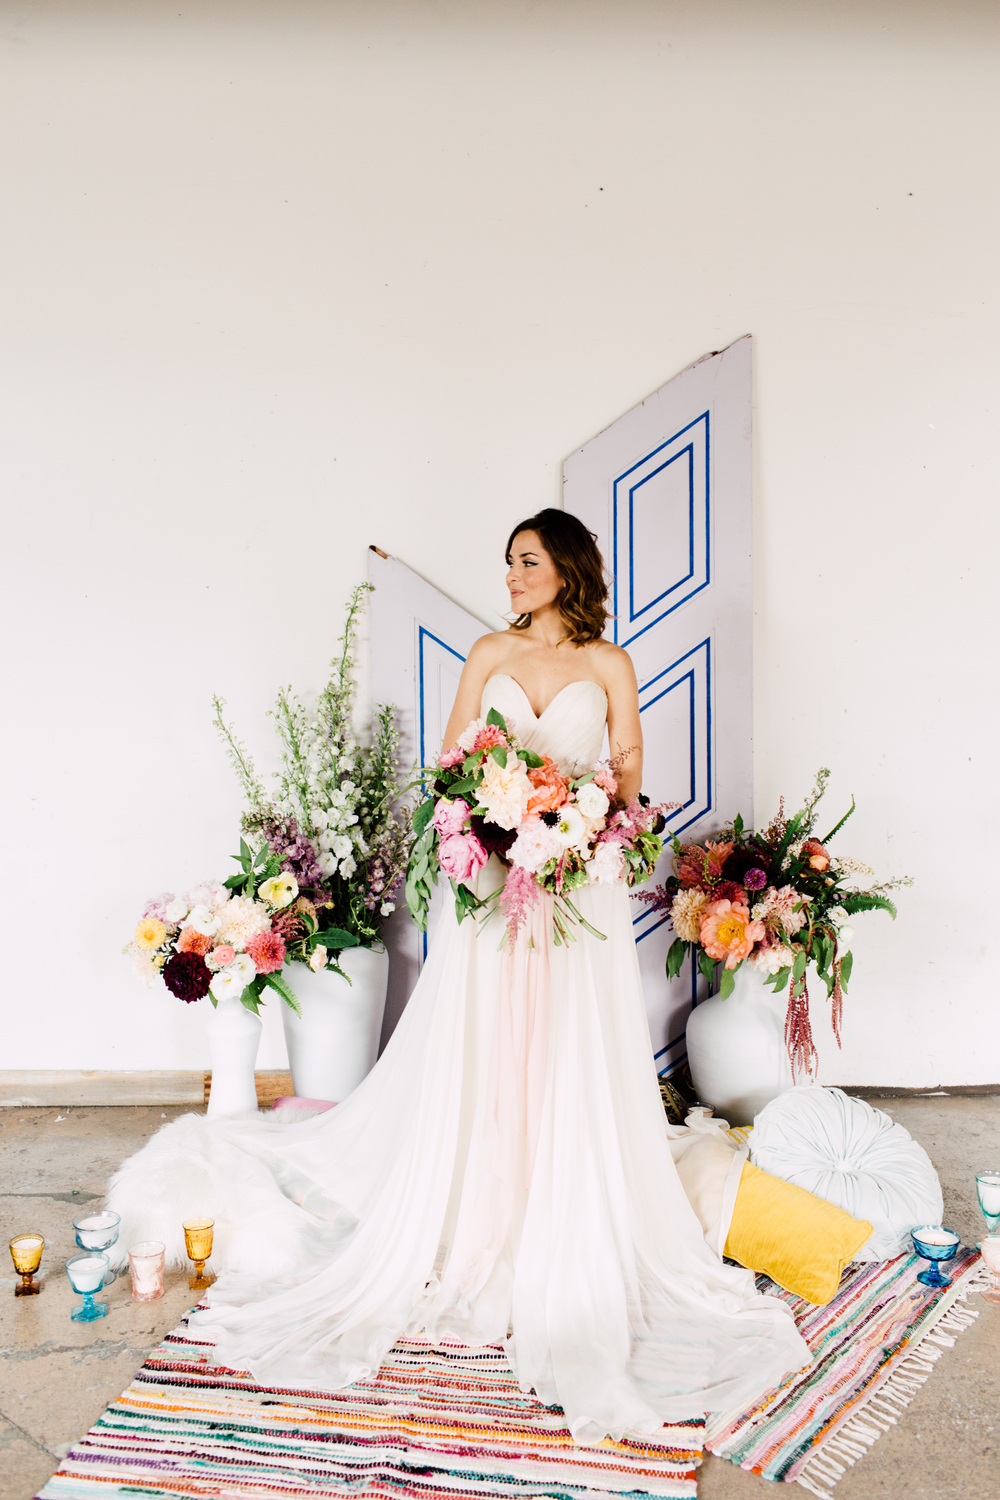 Boho wedding inspiration florals by: @thedaintylion photo by: @elysewhall